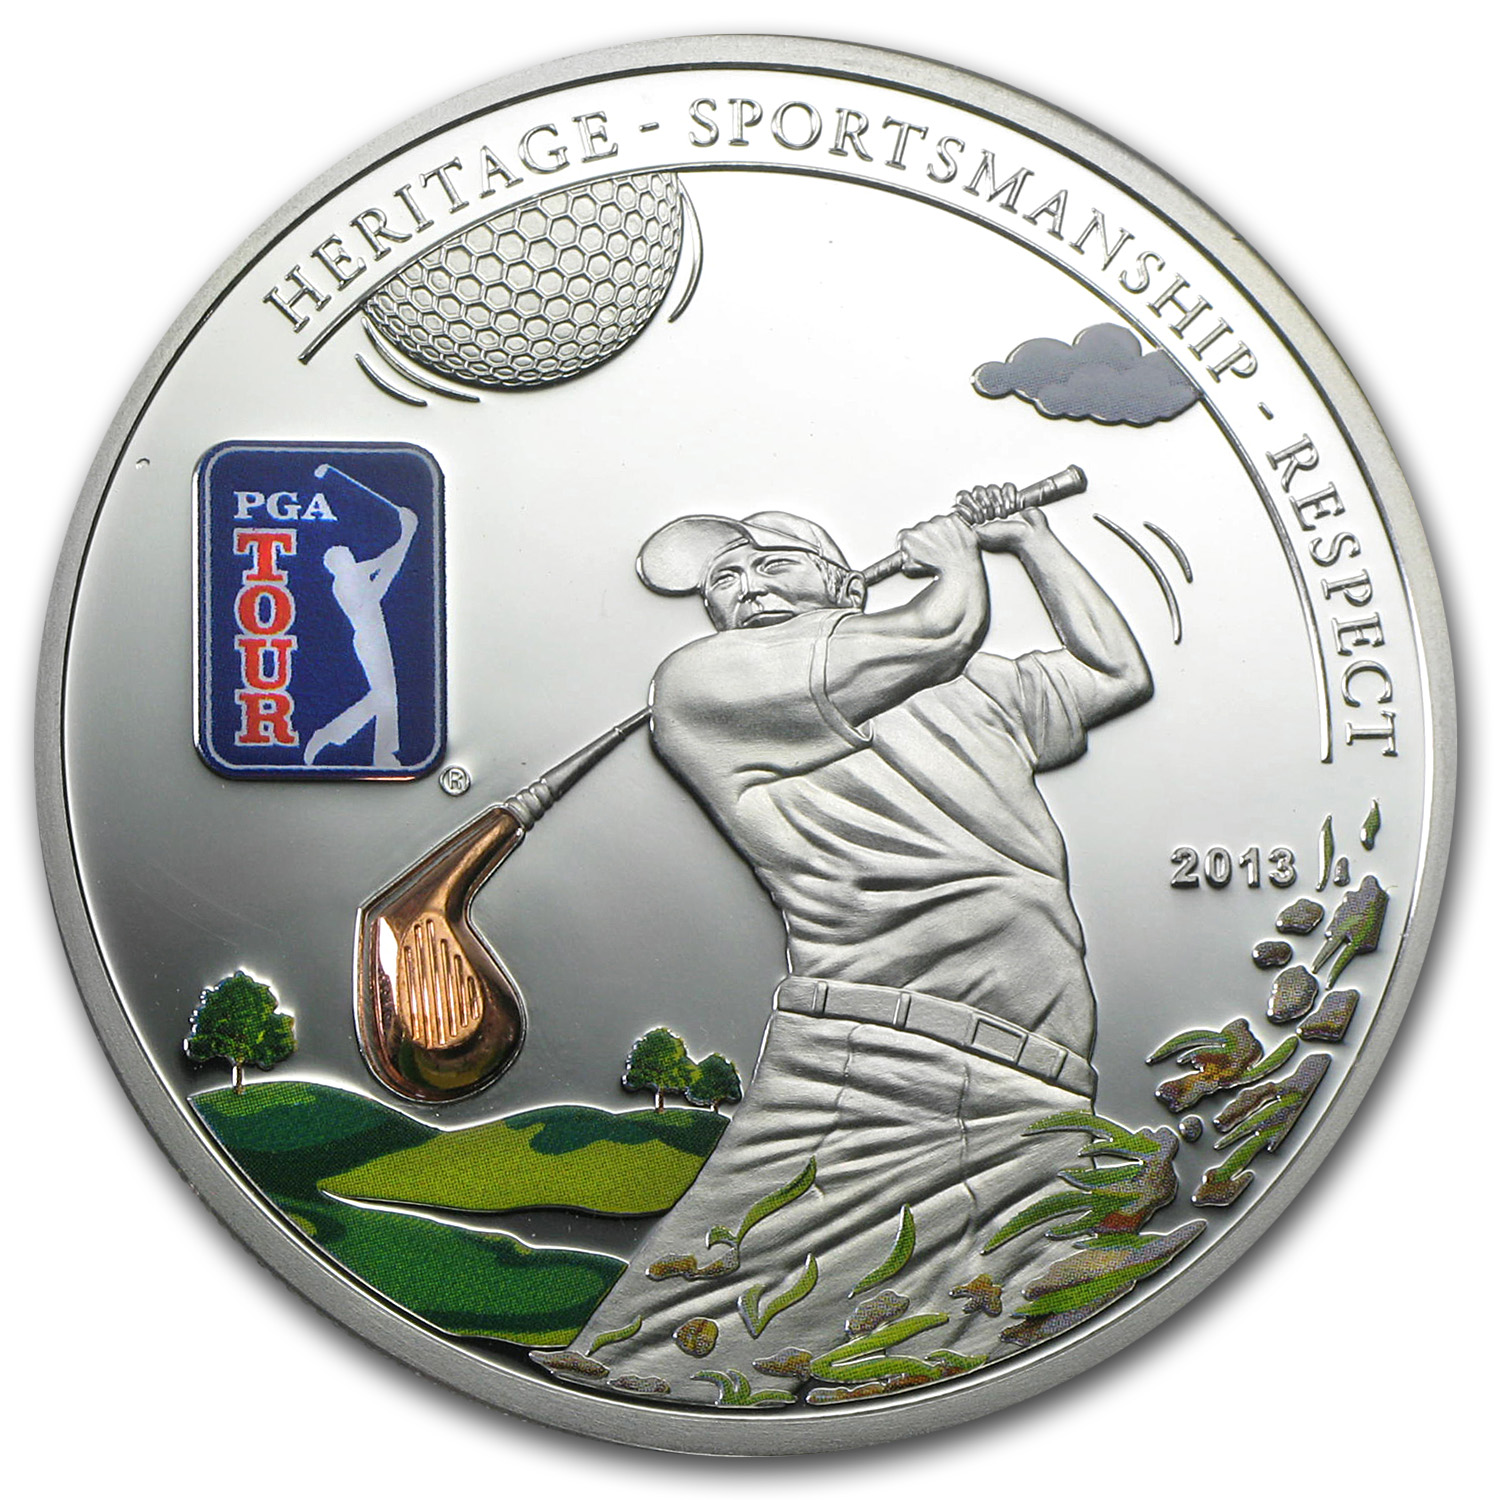 2013 Cook Islands Proof Silver $5 PGA Tour Golf Club